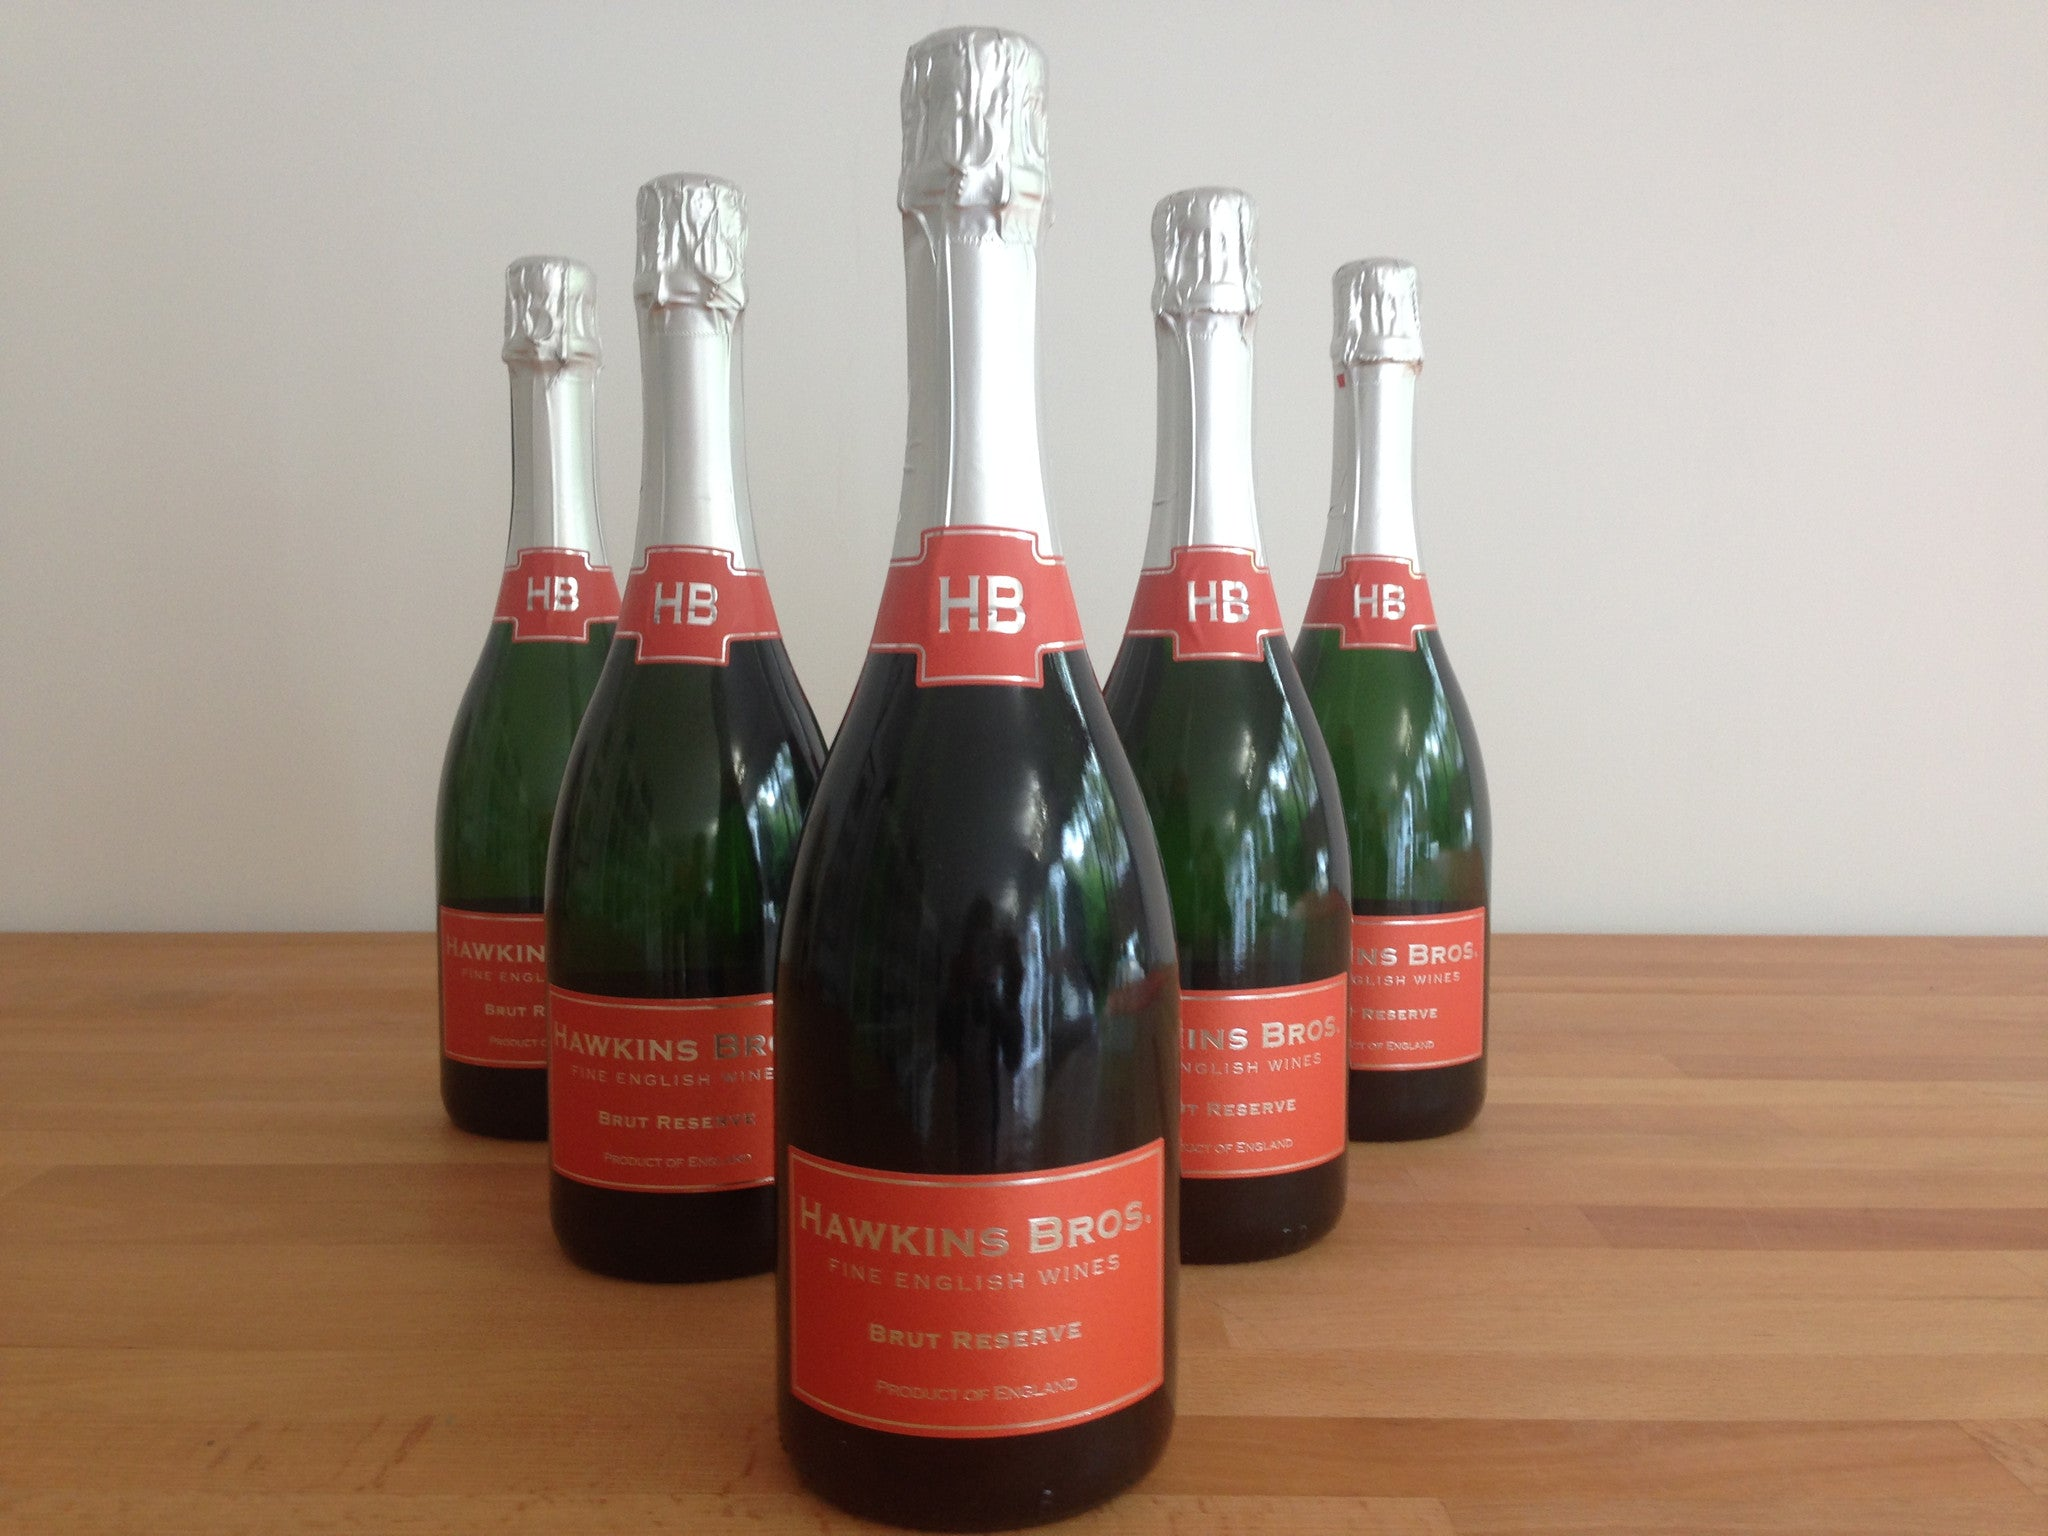 Our very own Brut Reserve is released